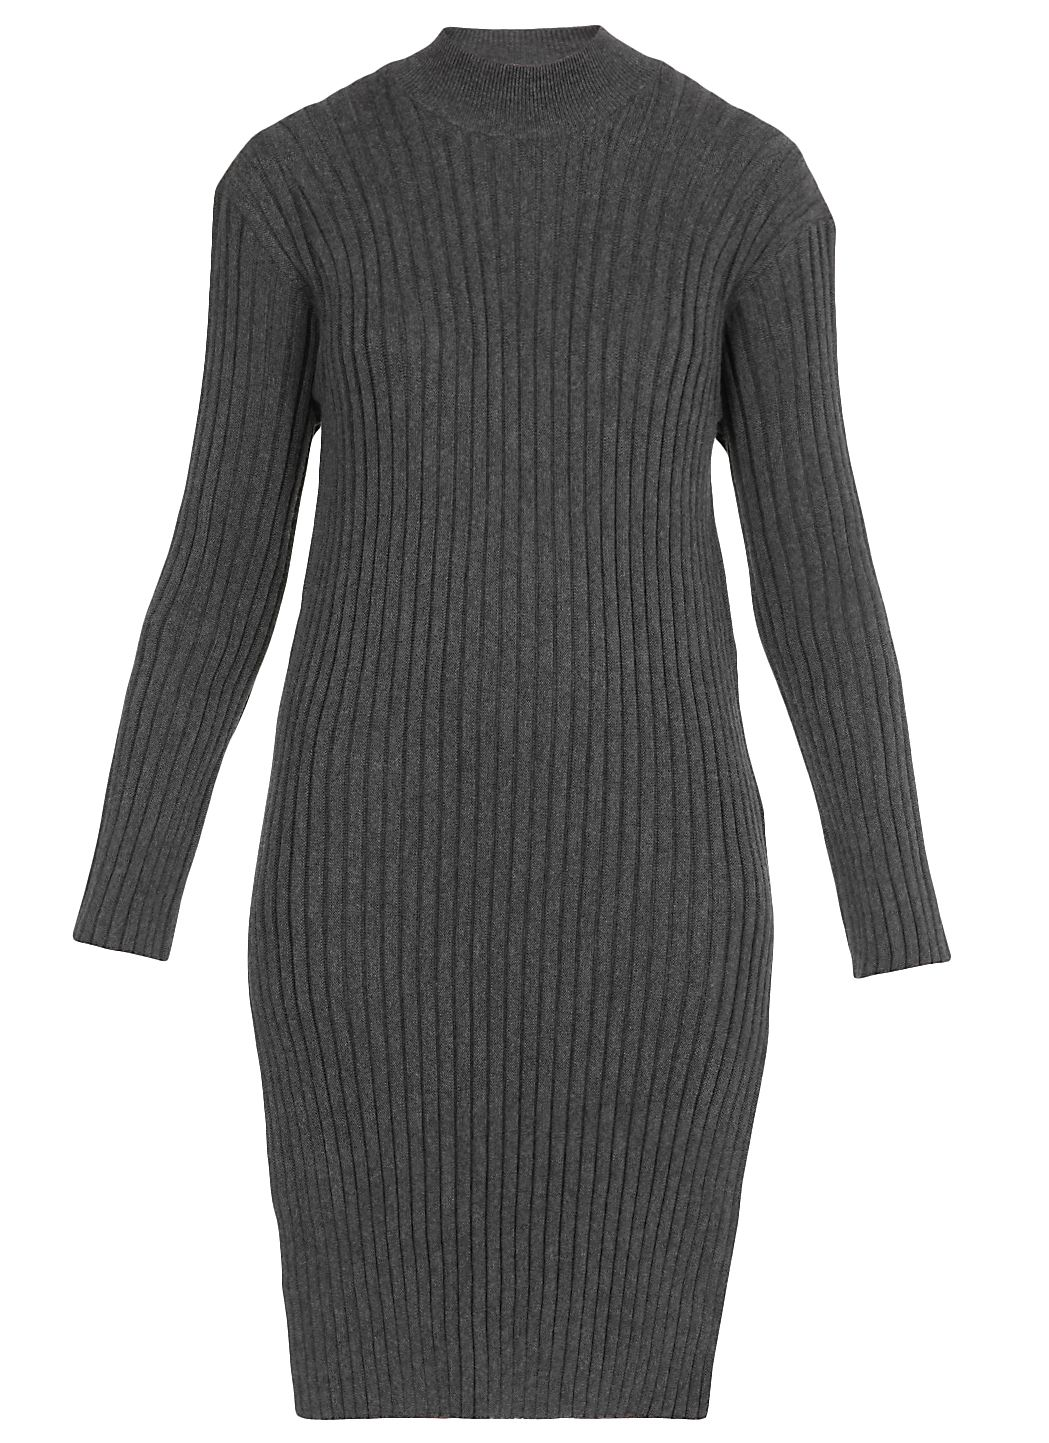 Pleated wool dress